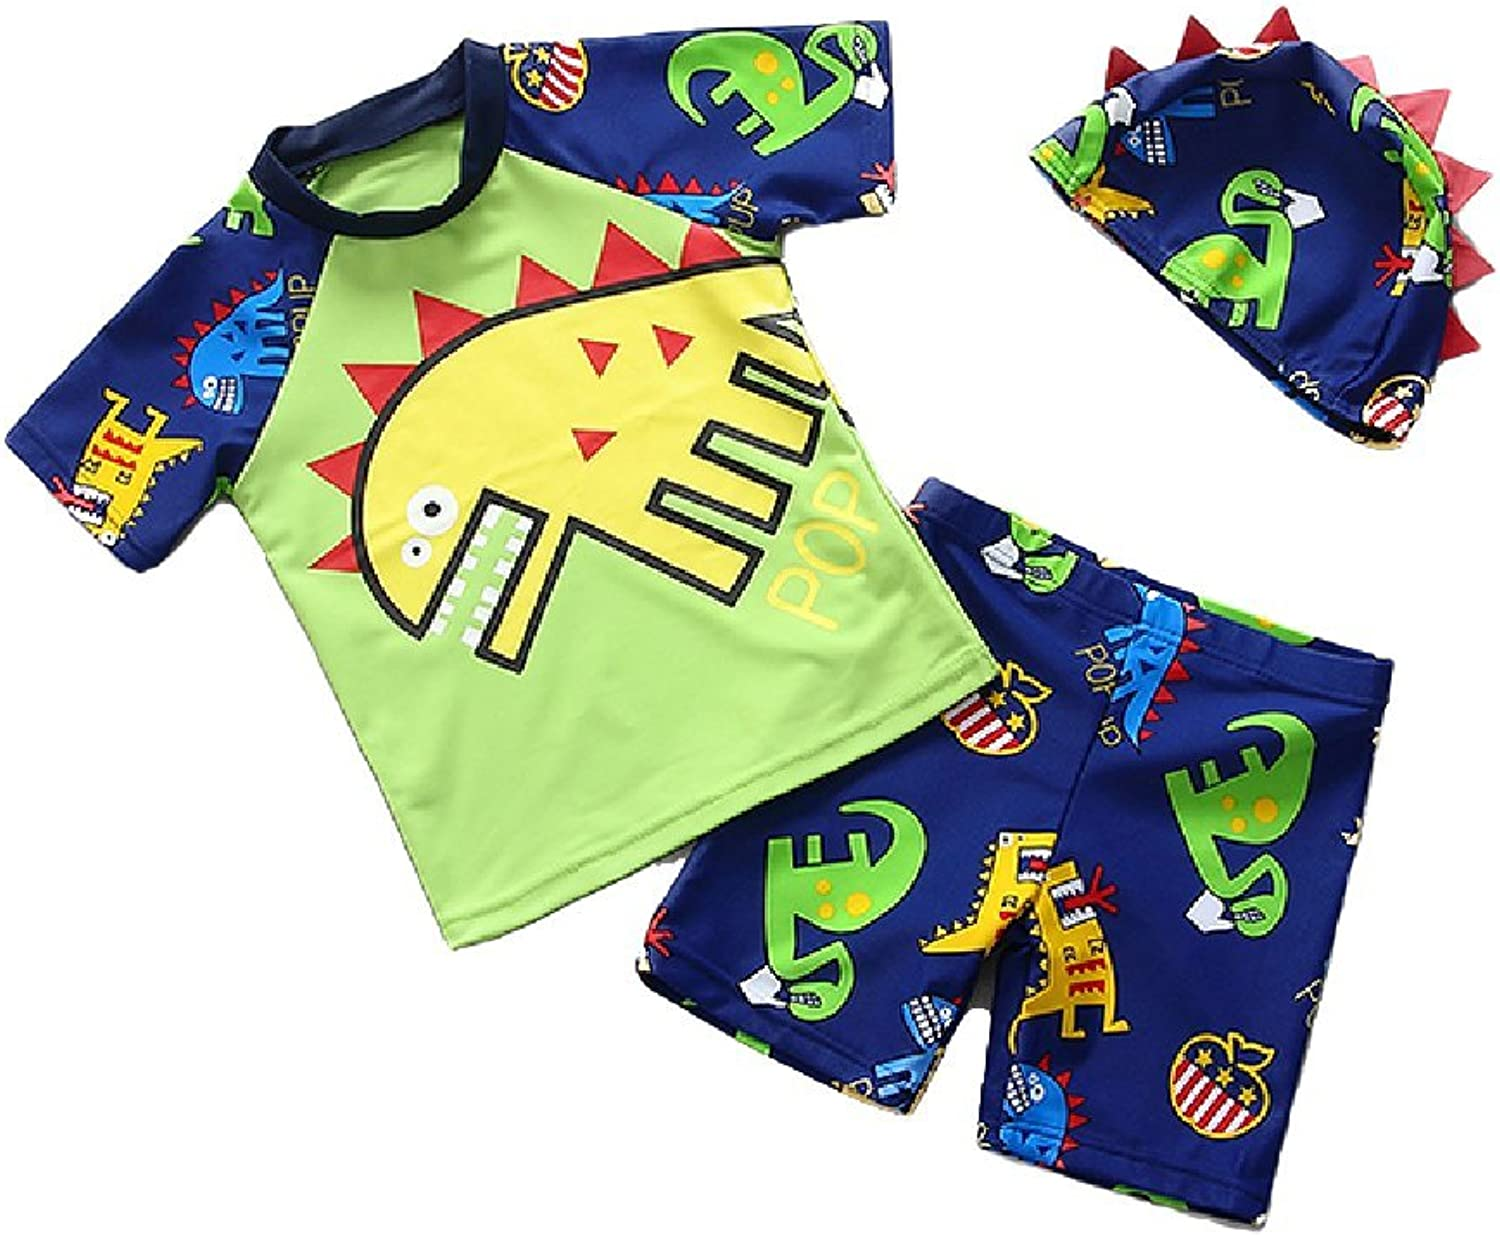 Tingping Infant Boy's UPF 50+ Sunsuit Two Pieces Rashguard with Cap